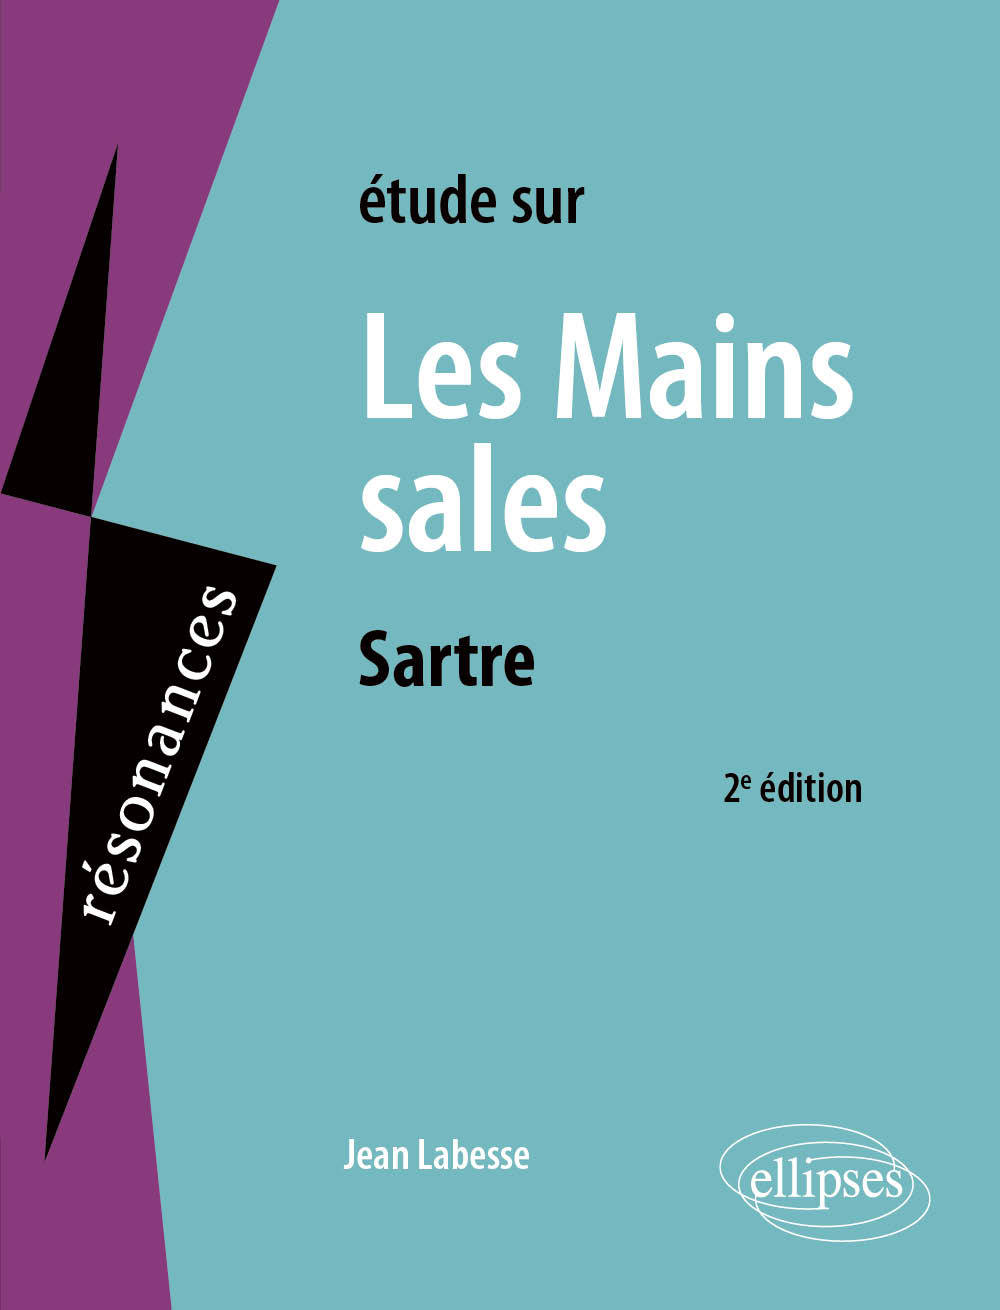 SARTRE, LES MAINS SALES